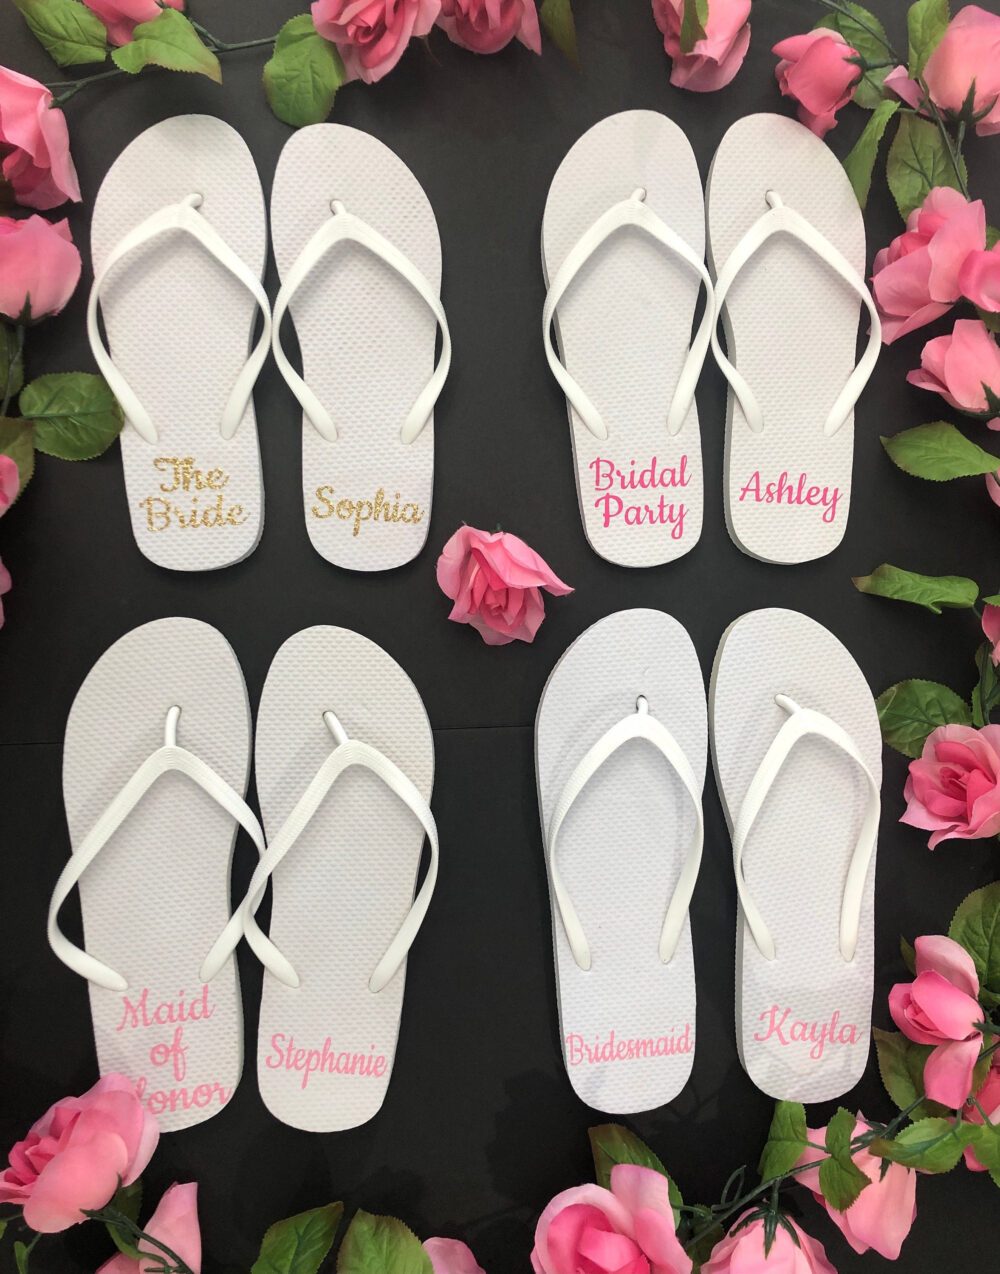 Bridal Party Flip Flops, Bride Slippers, Bridesmaid Gifts, Personalized Custom Wedding Flops